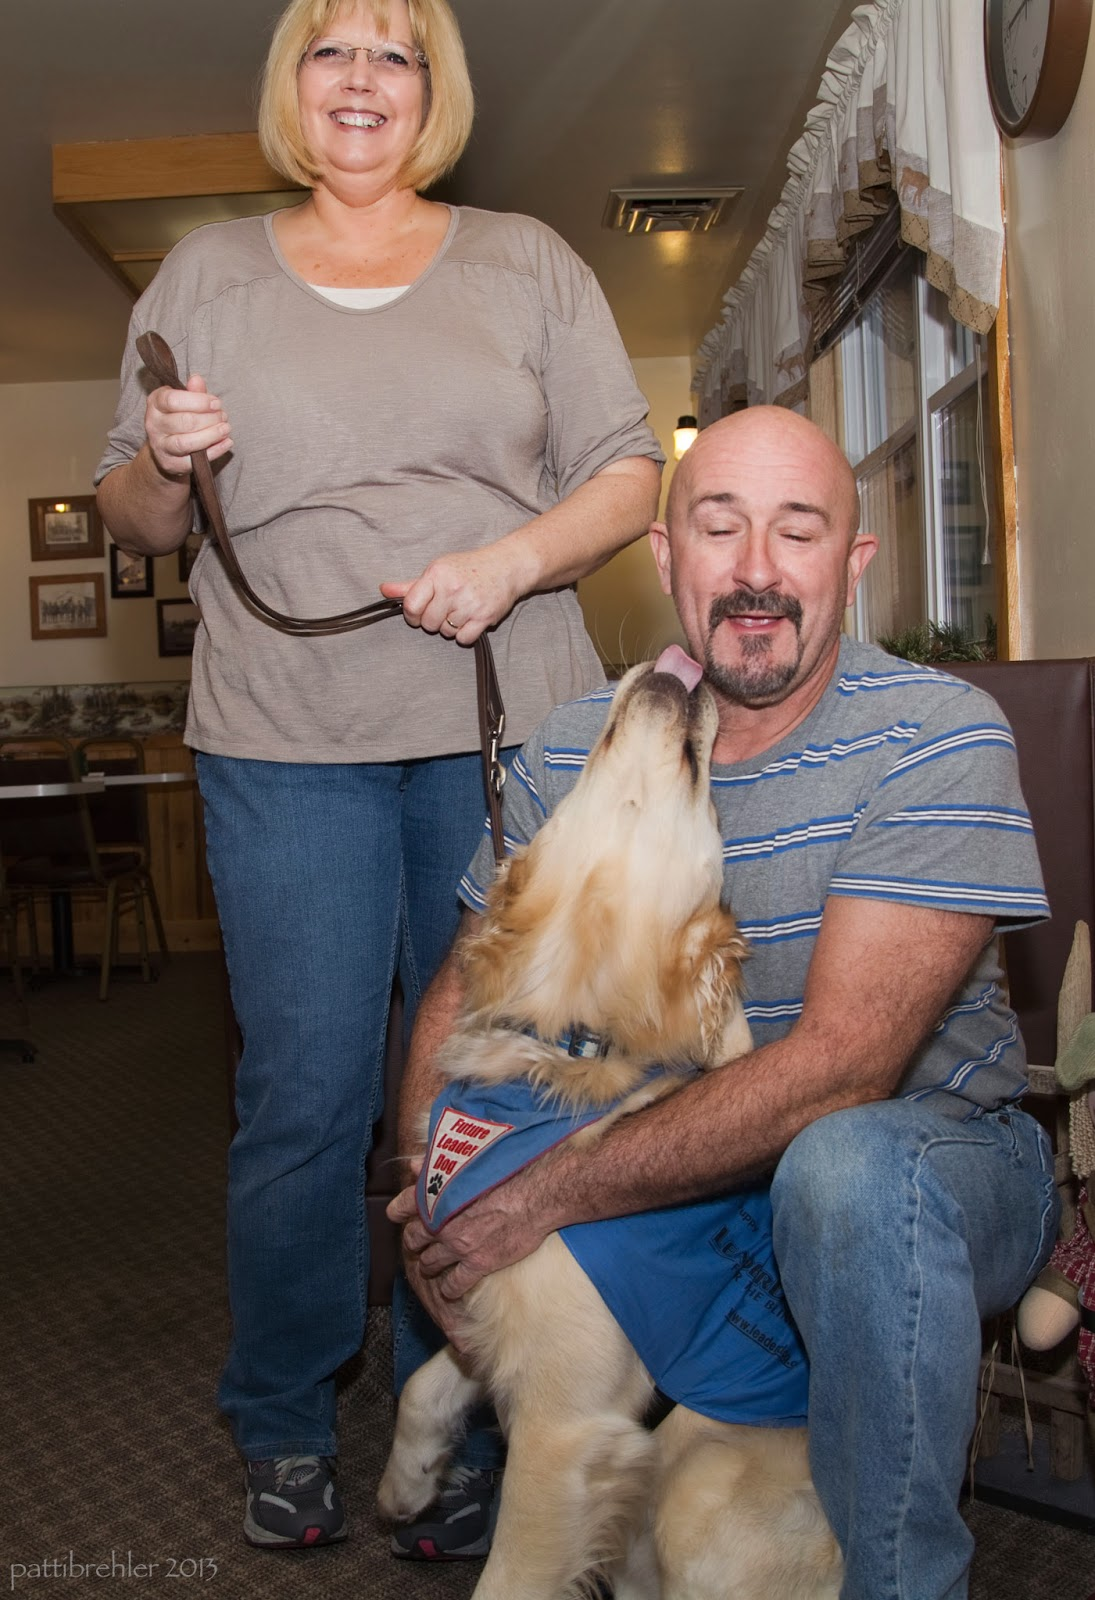 A woman with short blond hair wearing a grey short-sleeved shirt and blue jeans is standing on the left holding a brown leash. A bald man with a goatee and mustache is kneeling on one knee on the right. He is trying to hold a golden retriever, who is trying to lick the man's face. The man has his eyes closed and the woman is smiling. The man is wearing a gray and blue striped short sleeved shirt and blue jeans. The dog is wearing a blue jacket and a blue bandana.